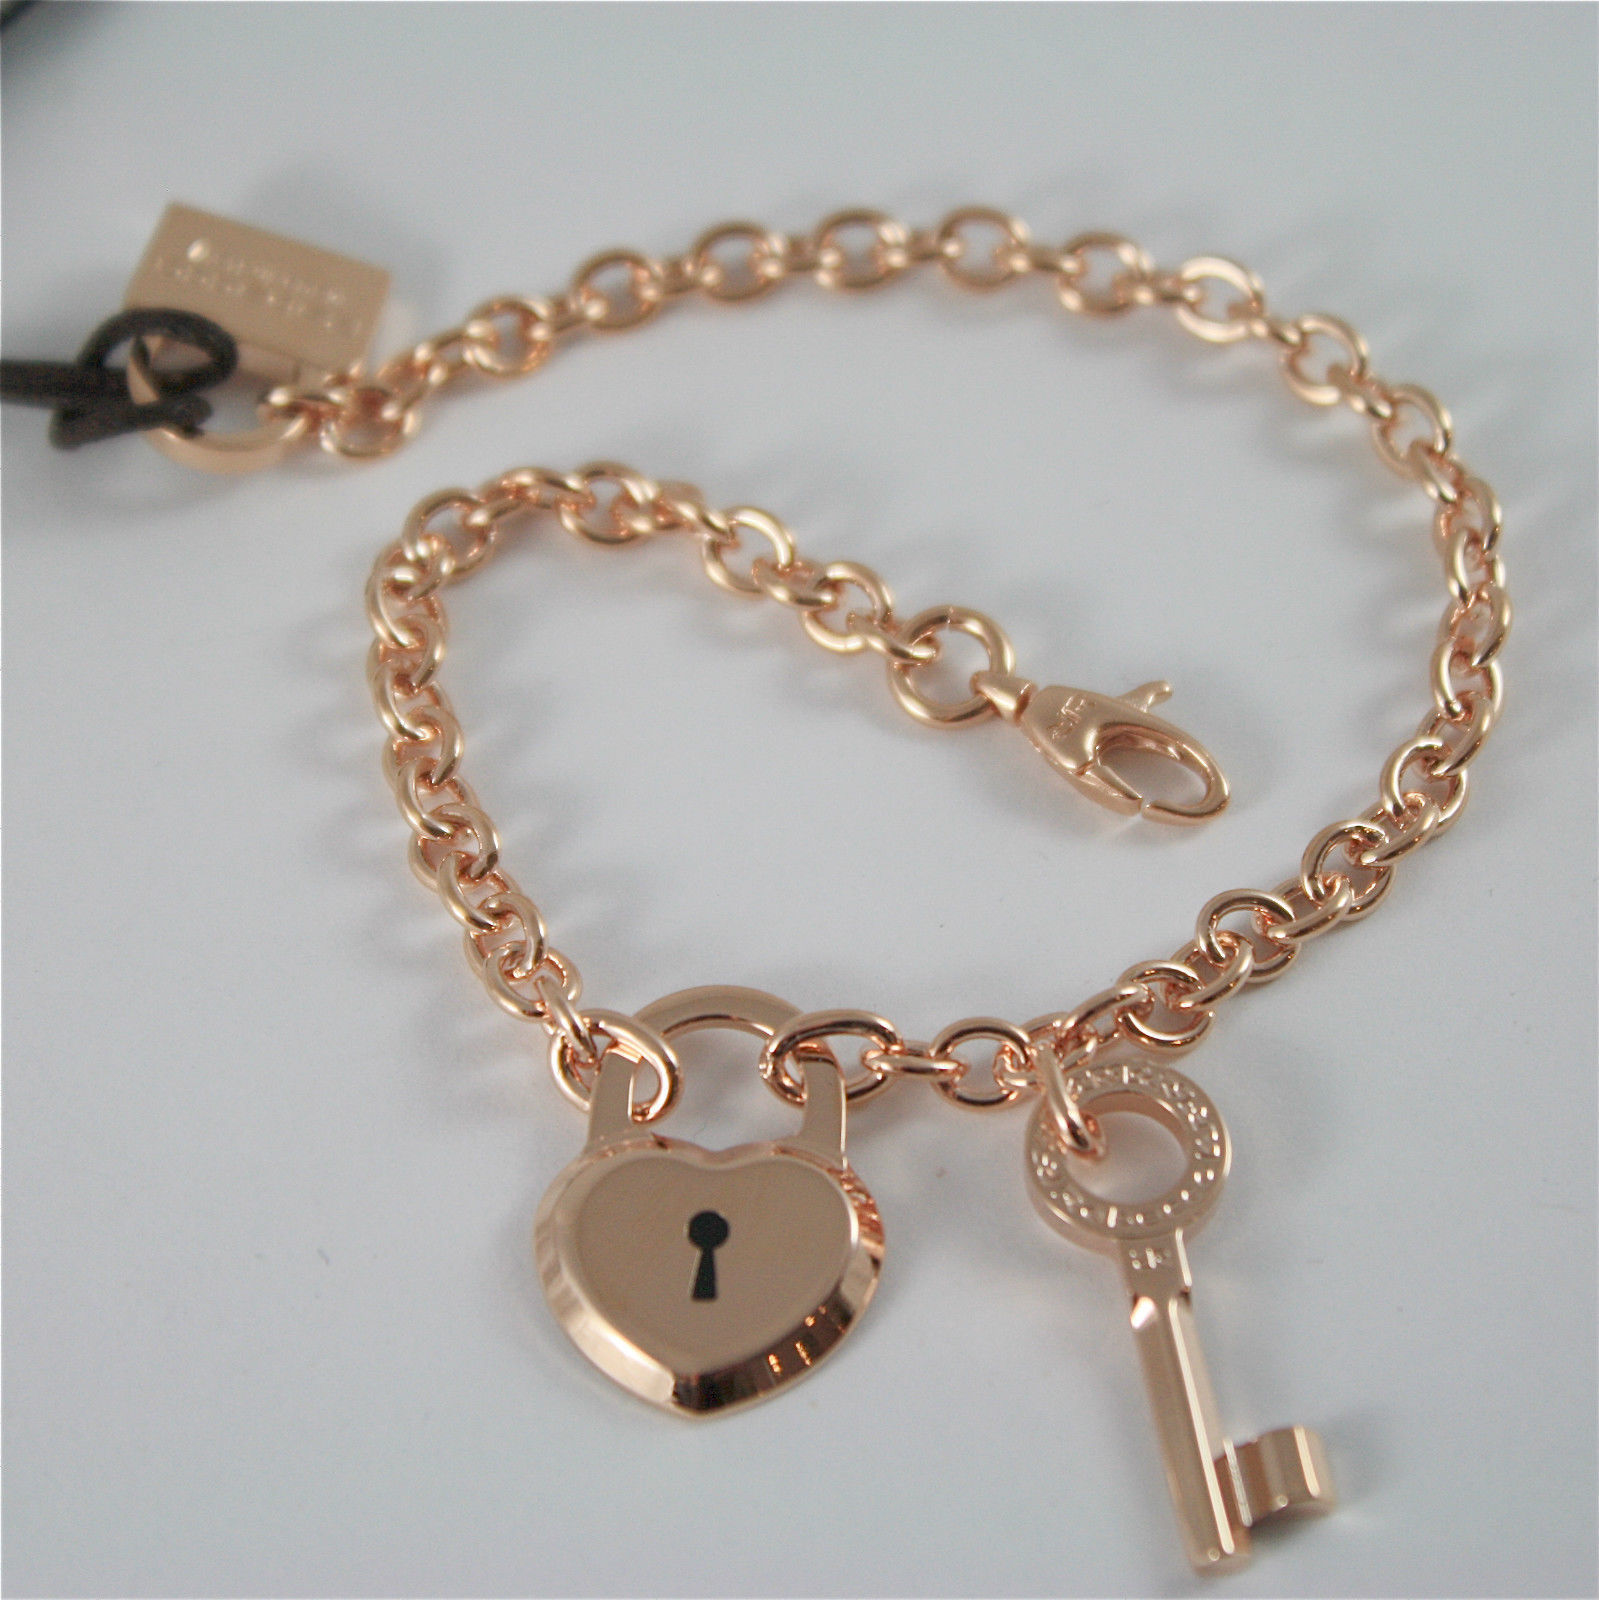 ROSE GOLD PLATED BRONZE REBECCA BRACELET LOVE LOCK BLLBRB63  MADE IN ITALY 8.27